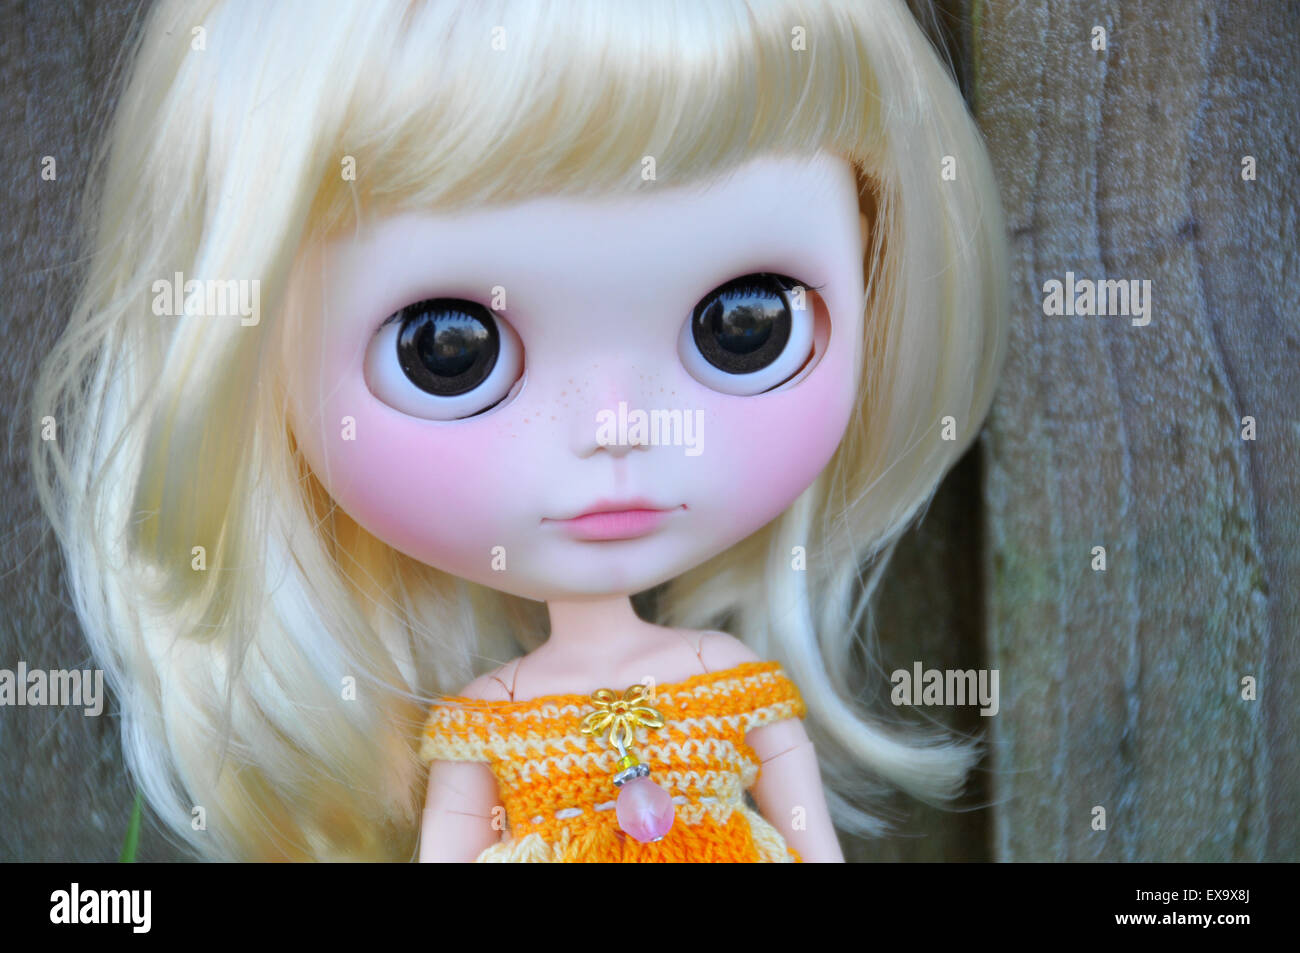 Beautiful doll - Stock Image